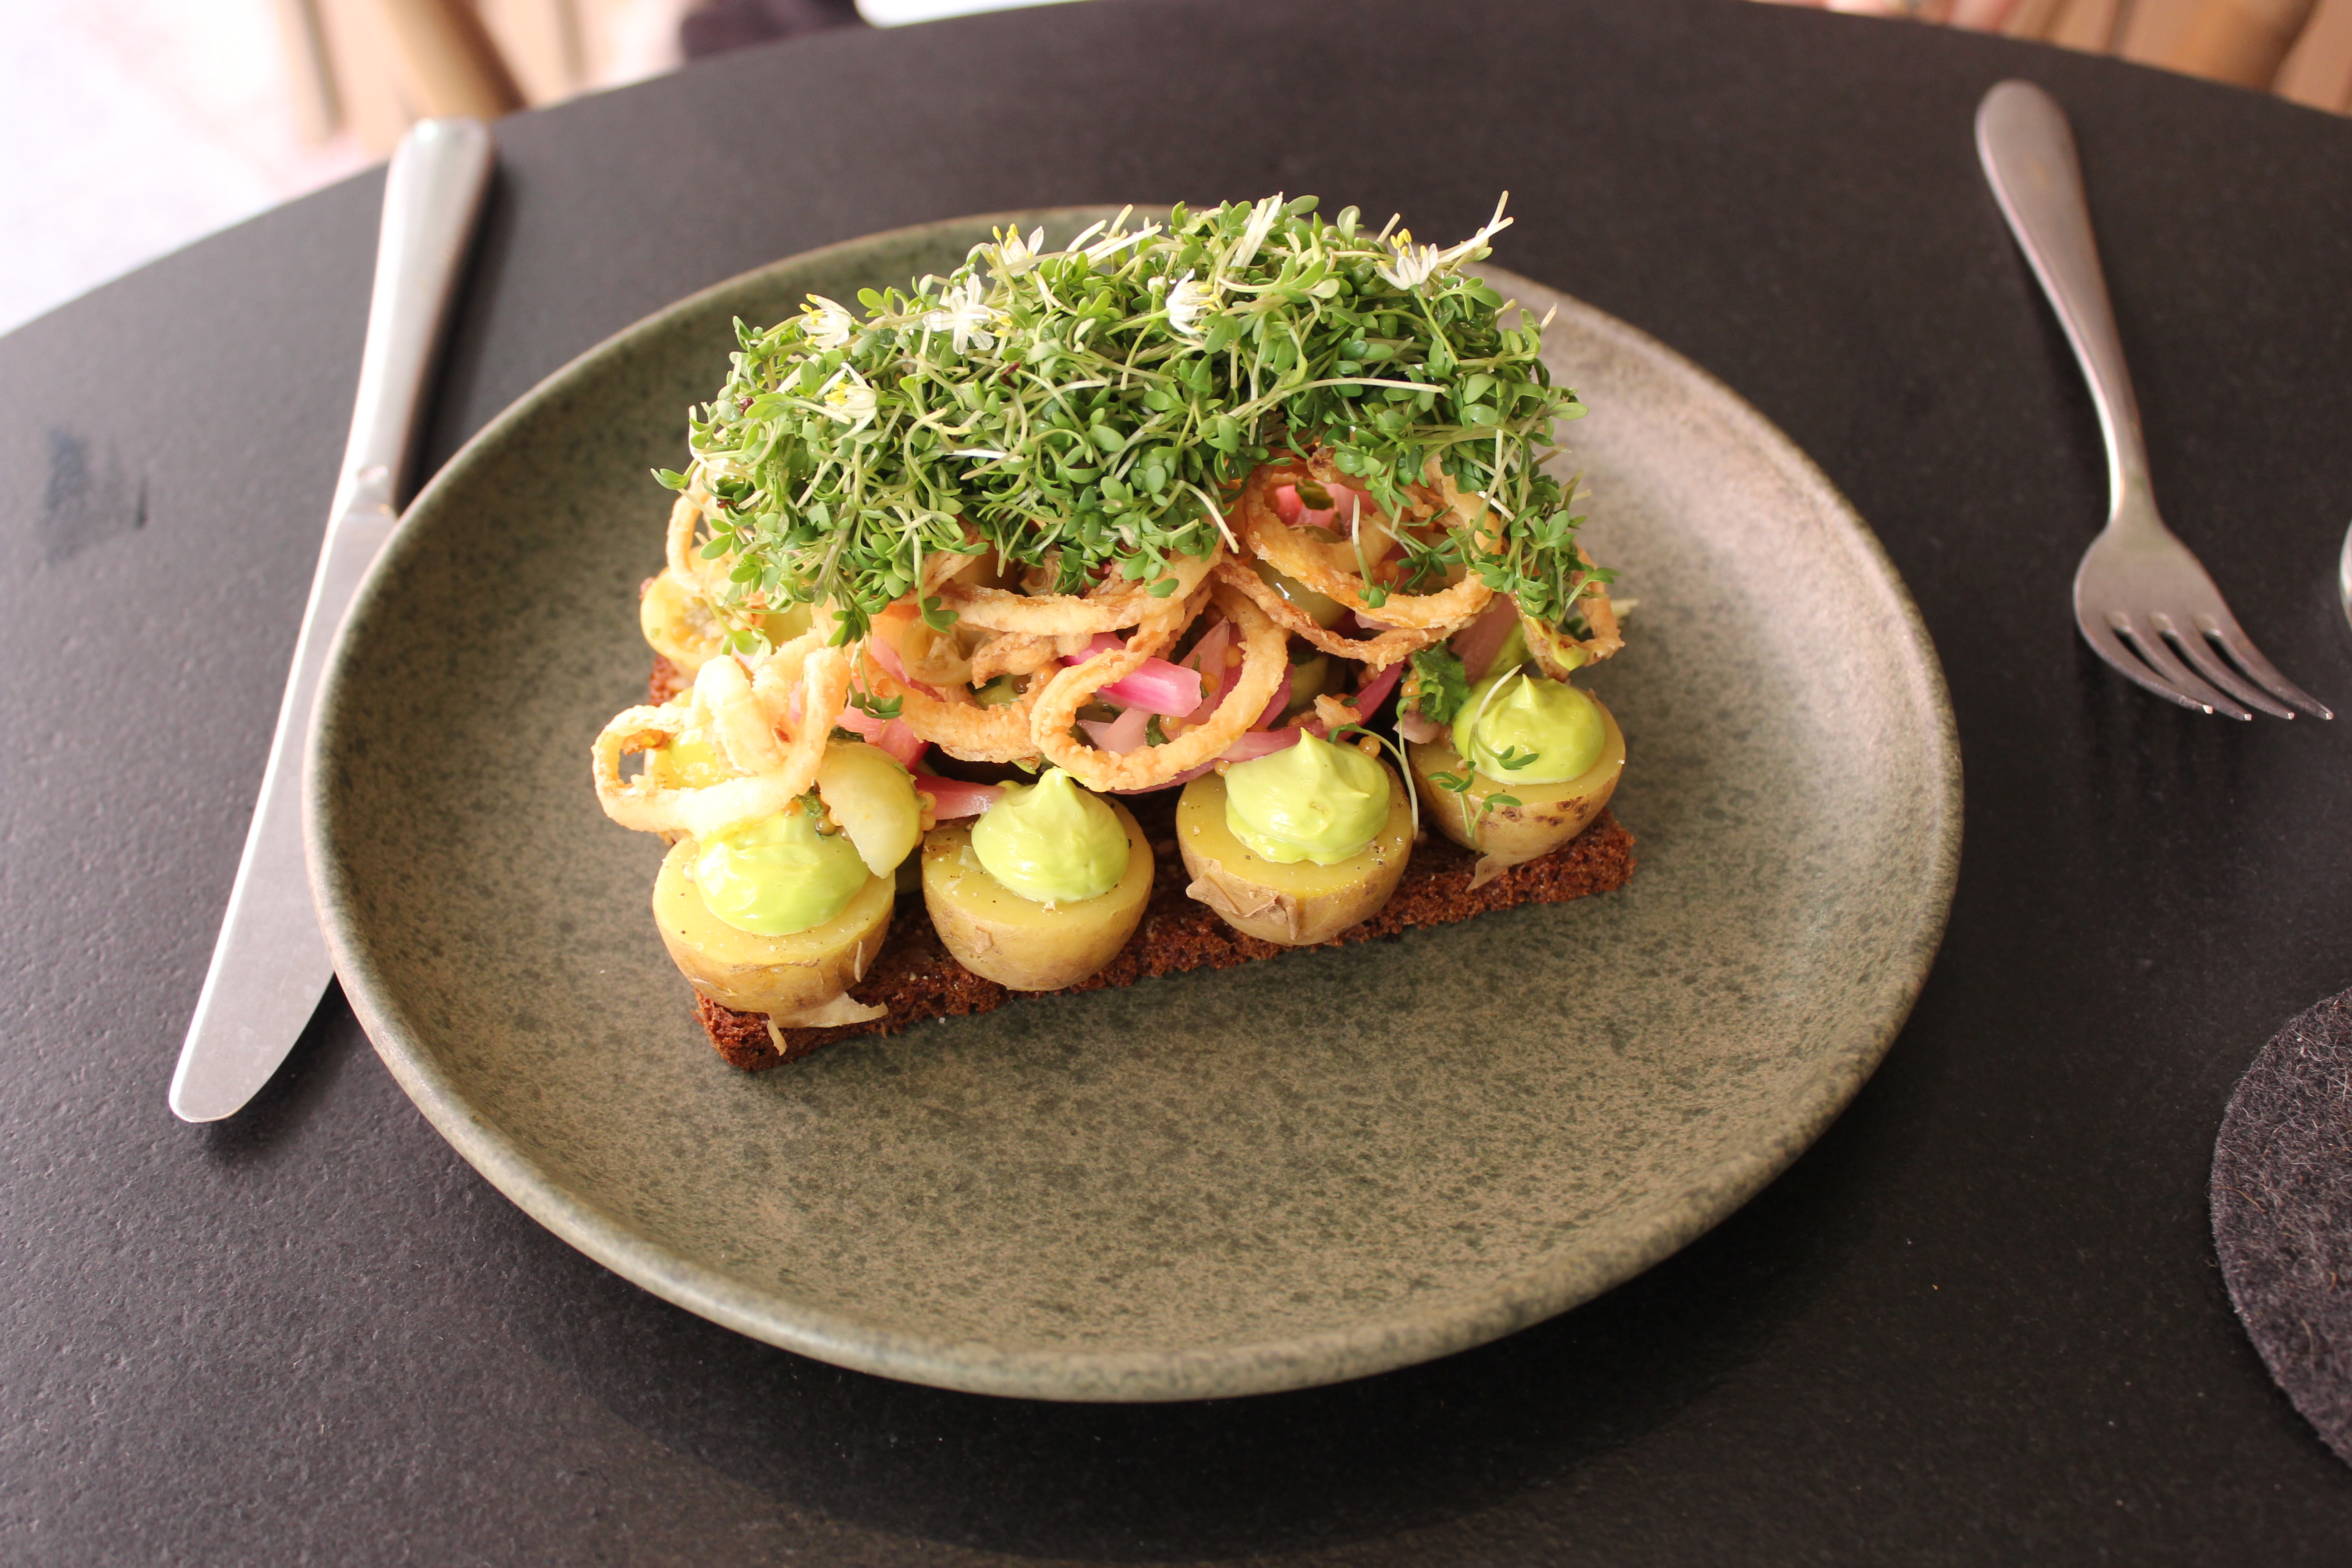 An open-faced smorrrebrod sandwich of dark rye bread topped with a towering display of deviled eggs, fried onions and sprouts, sitting on a slate plate on top of a simple black tabletop with cutlery on either side.